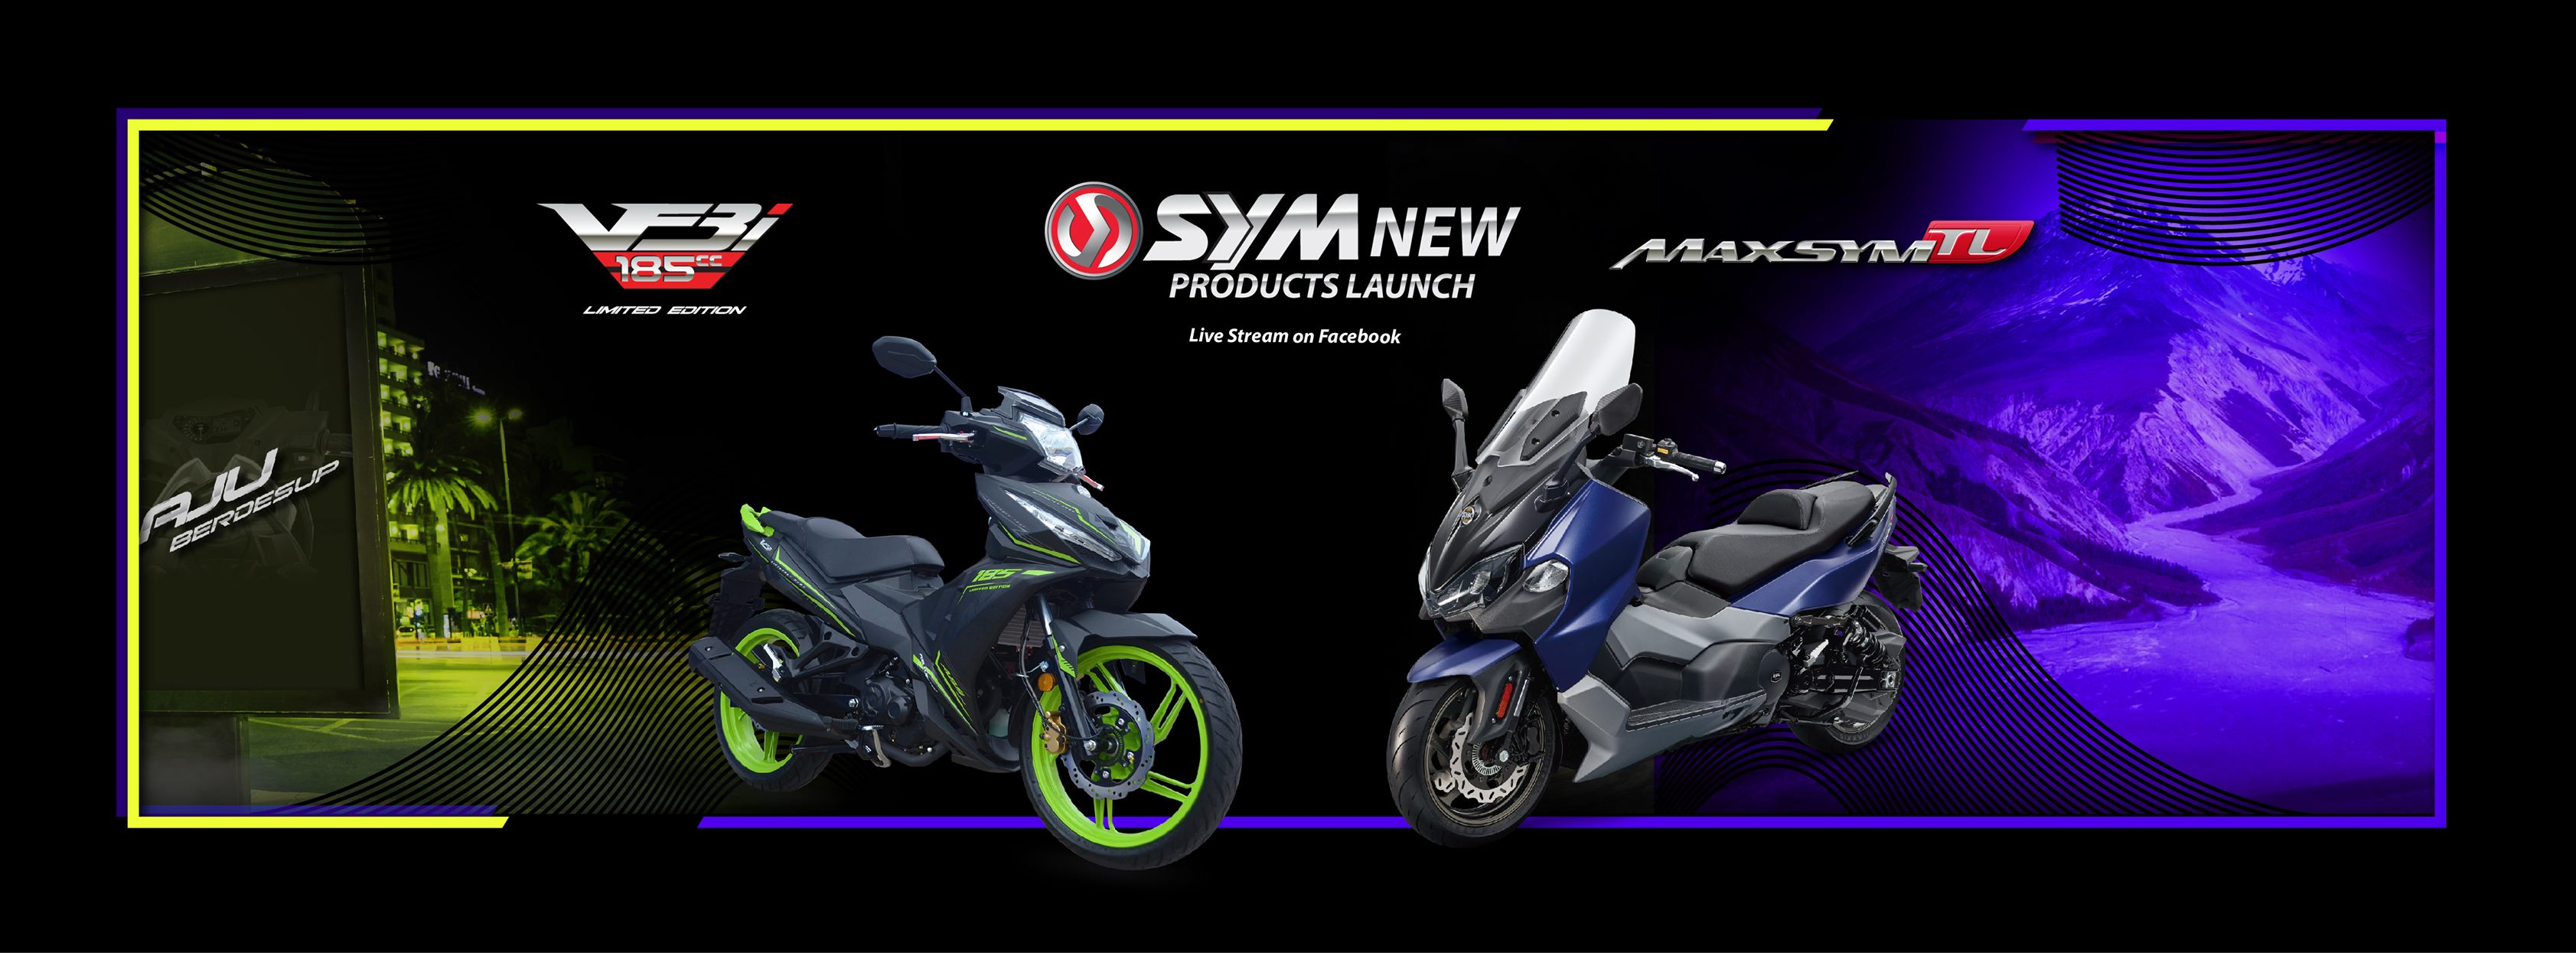 SYM Maxsym TL 500 and Limited Edition VF3i 185 LE with ABS Launched!